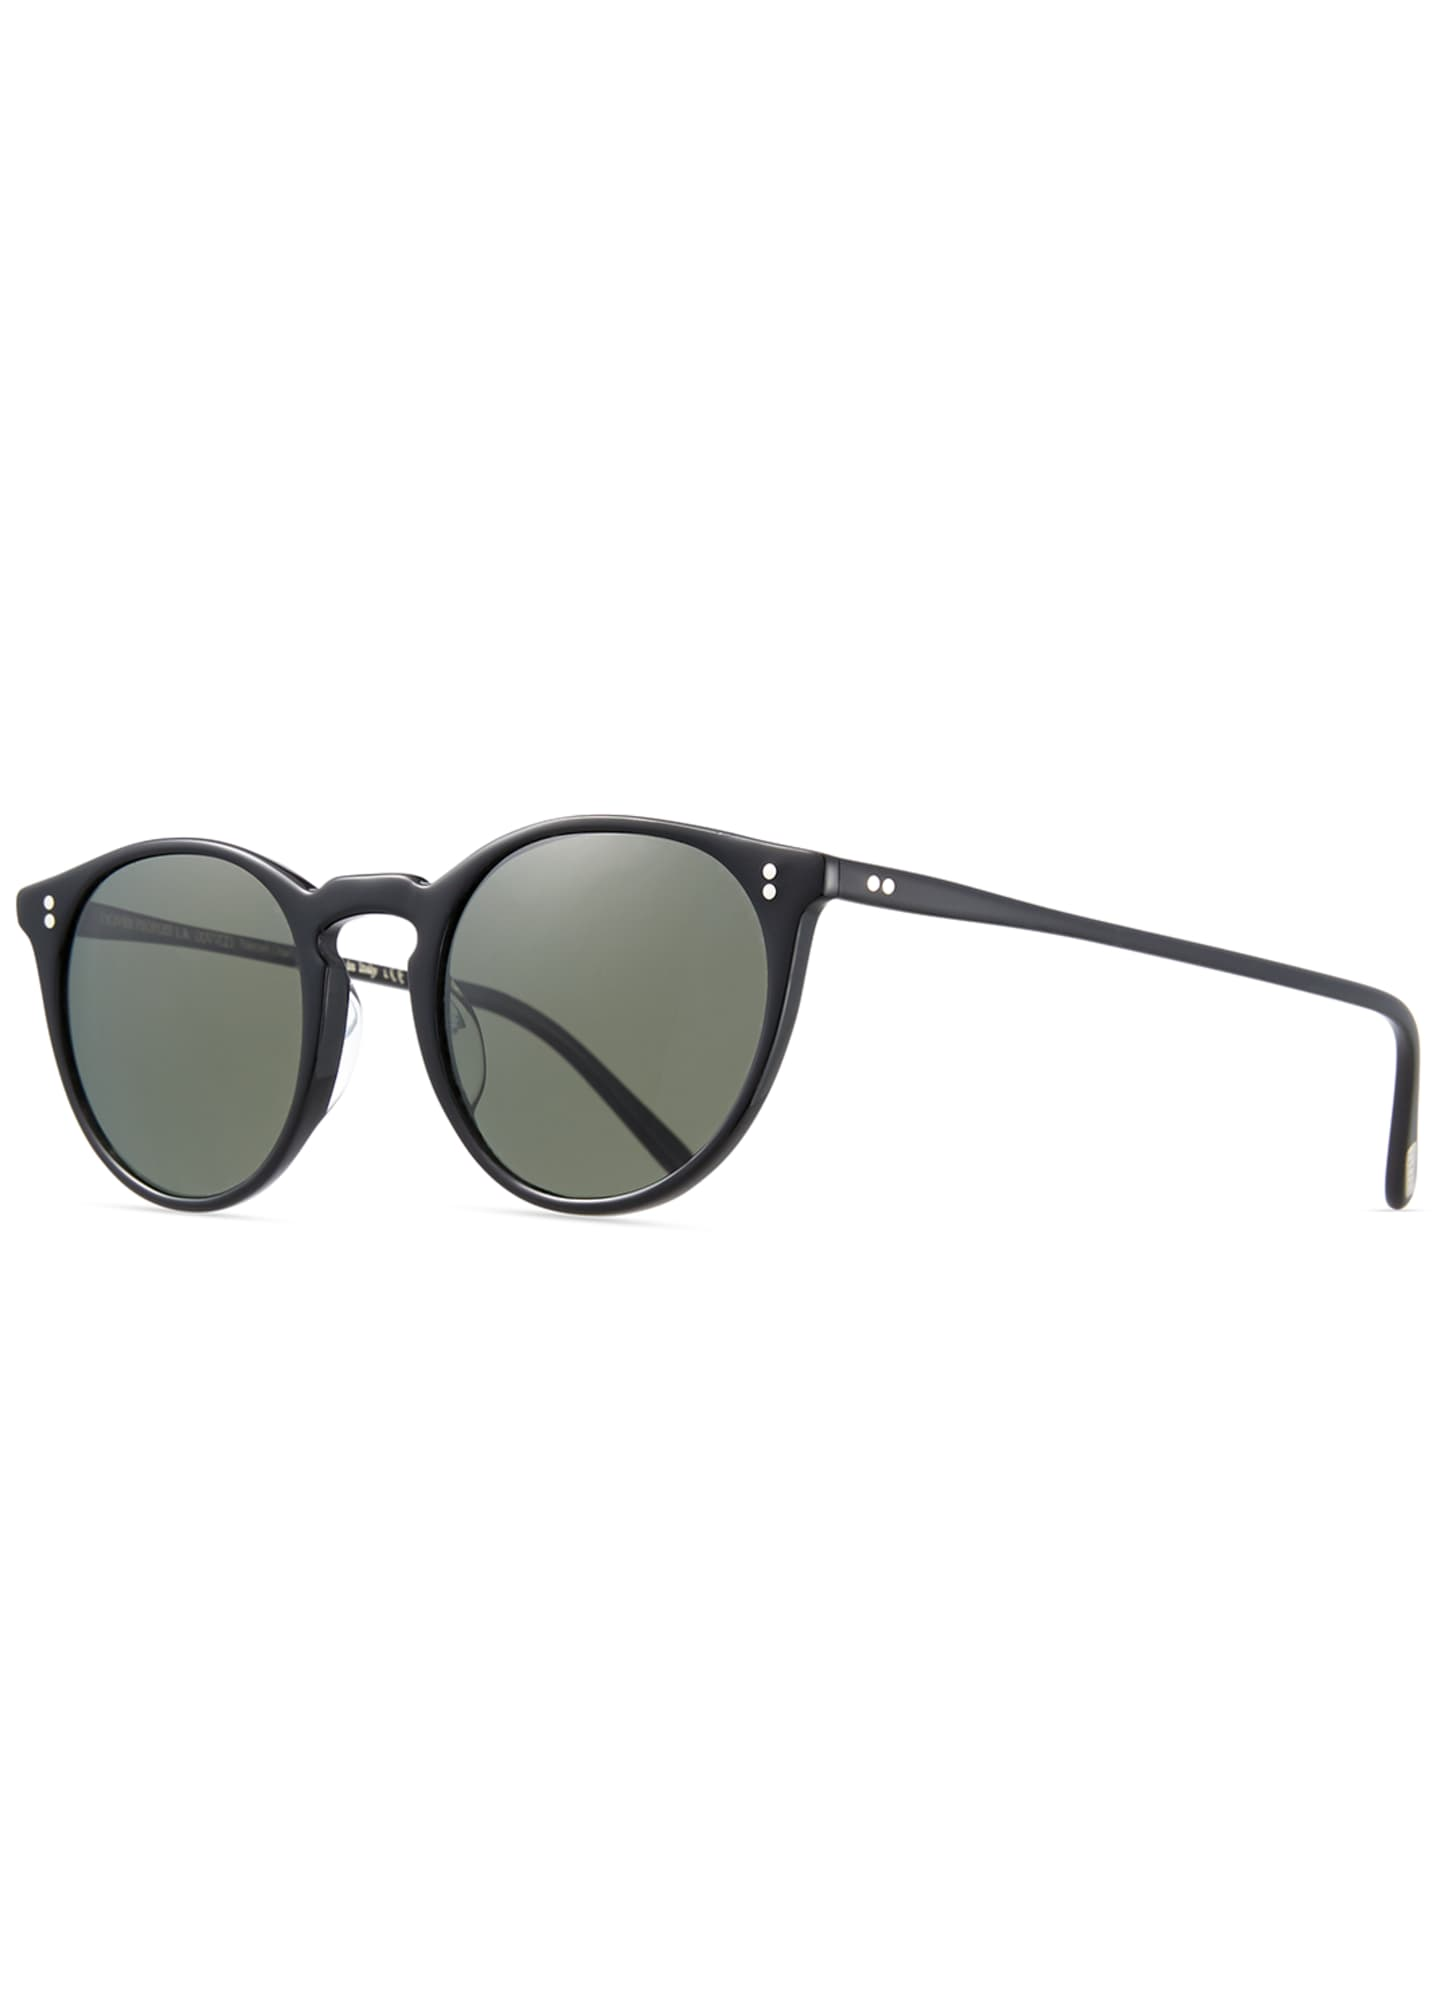 Oliver Peoples Men's O'Malley NYC Peaked Round Sunglasses